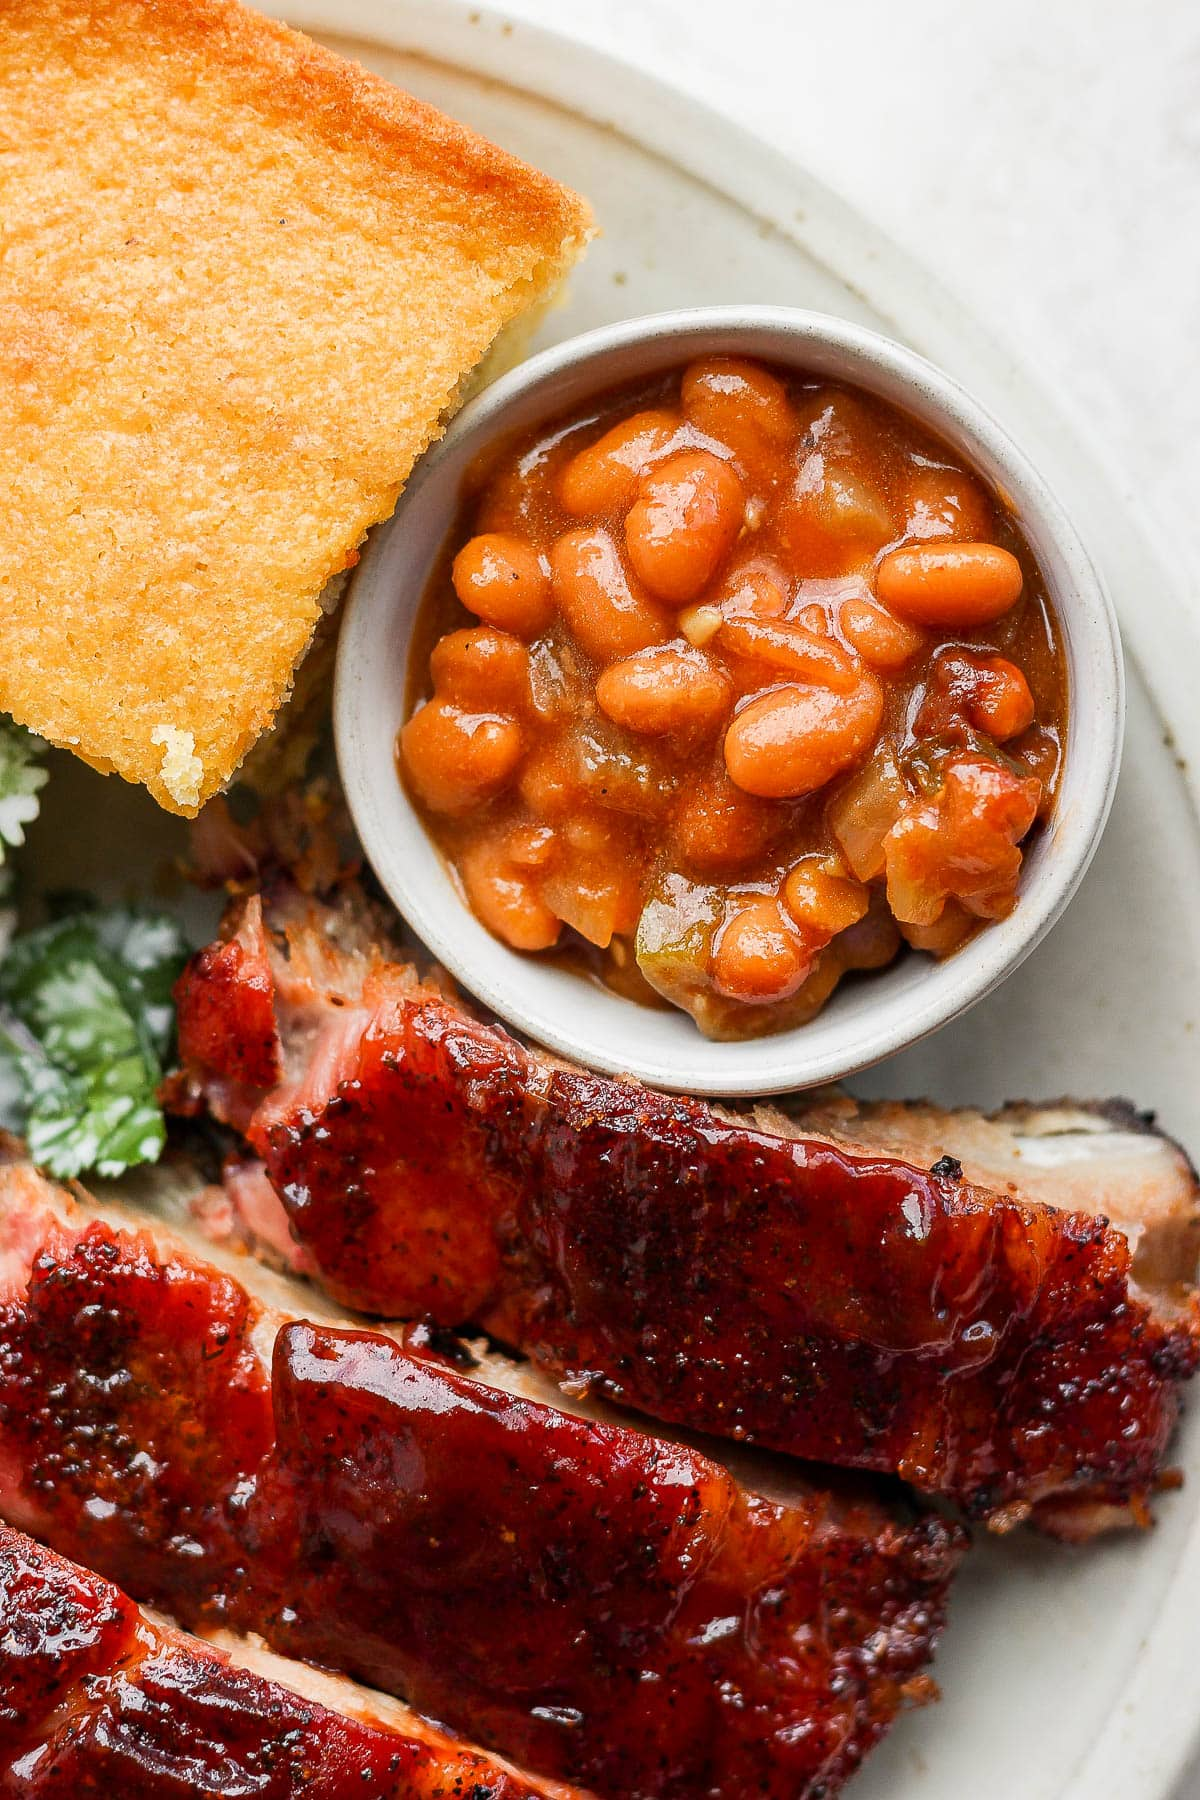 Smoked Baked Beans in a small bowl sitting on top of plate next to smoked rib and cornbread.